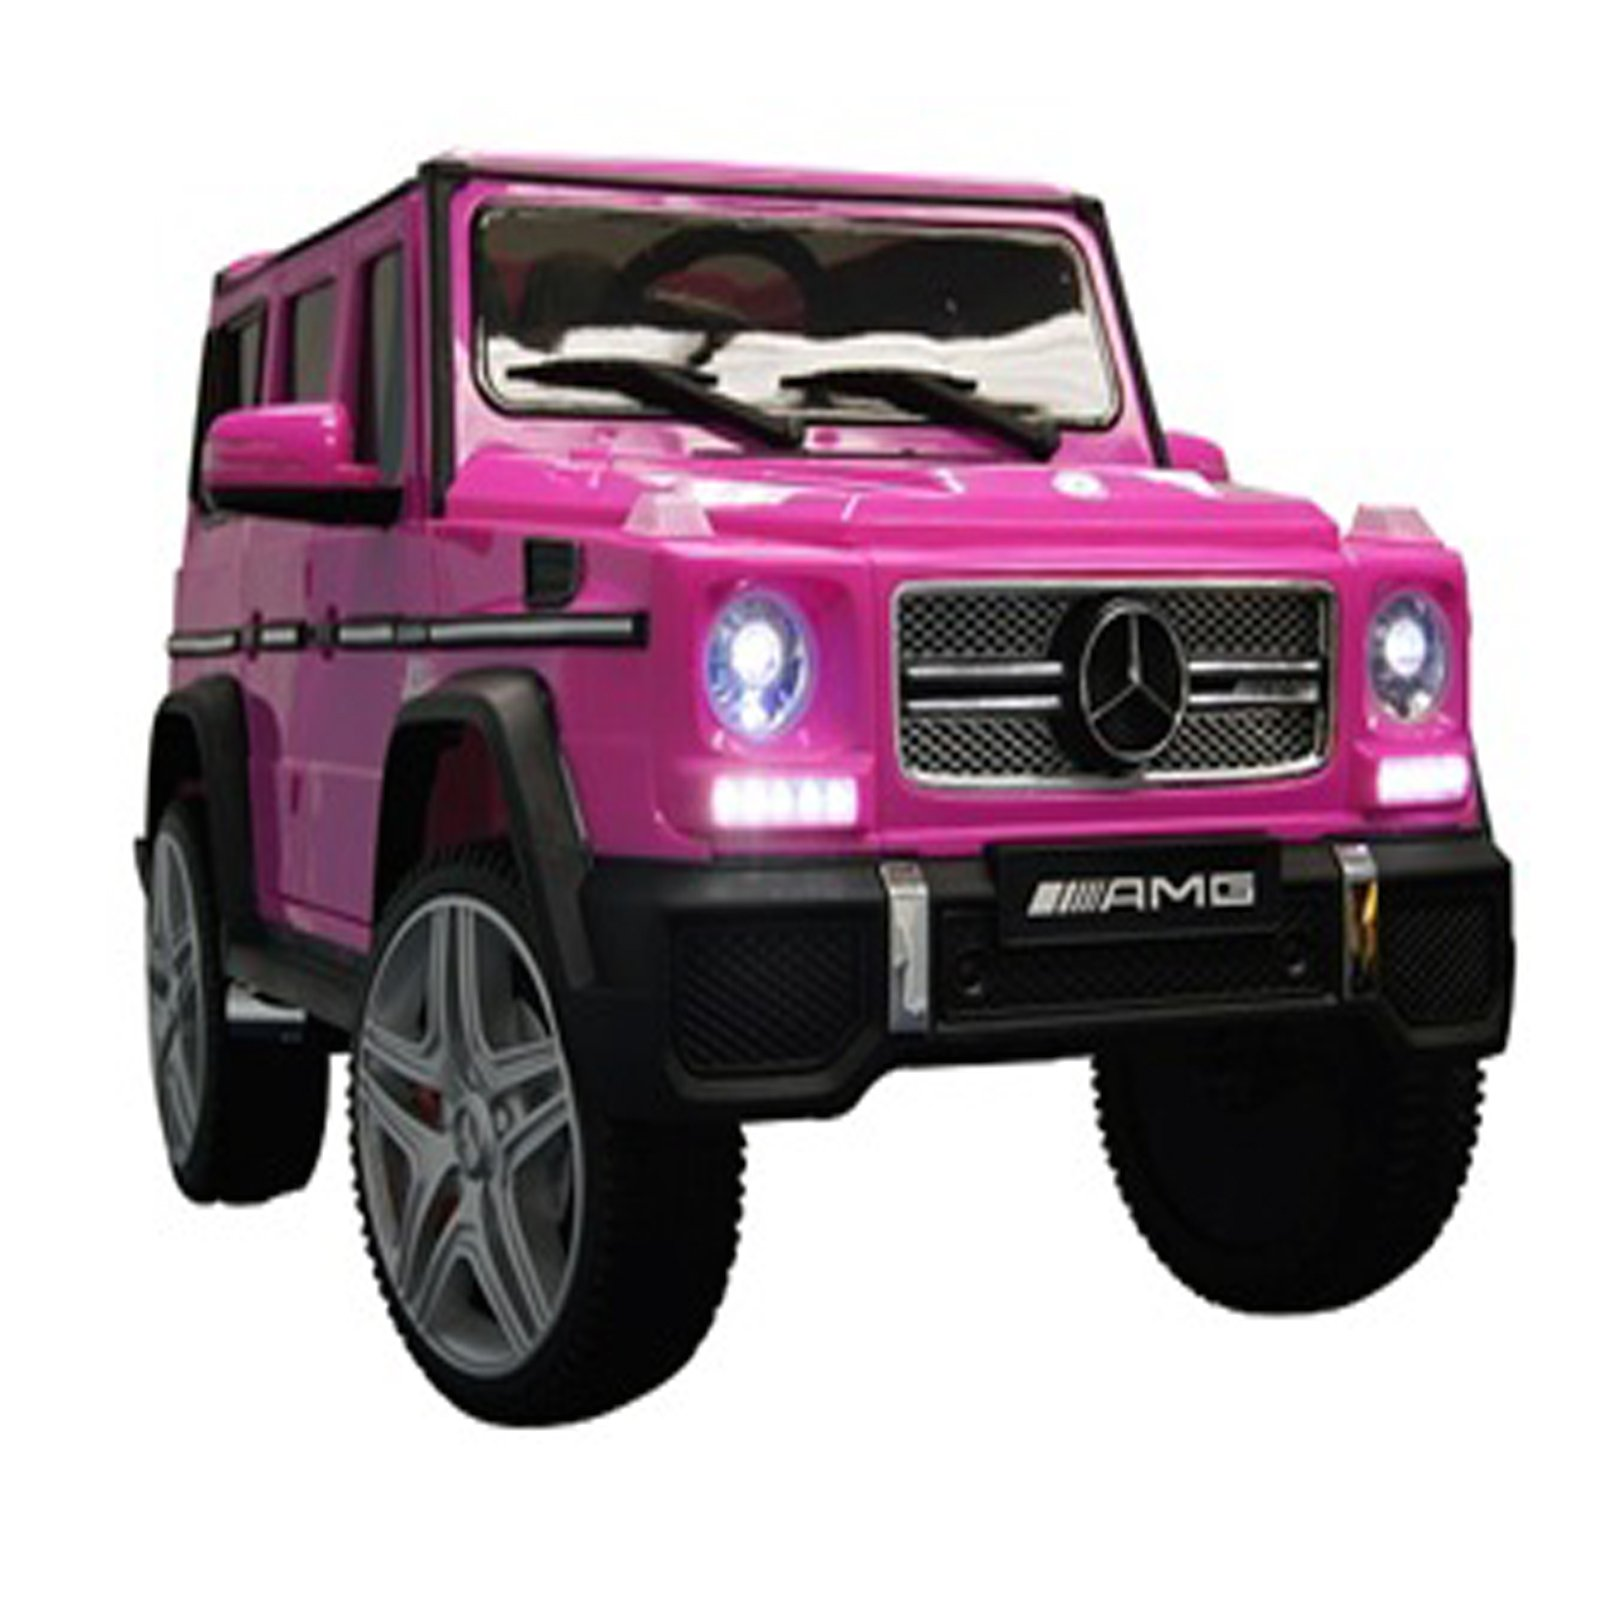 KidPlay Licensed Kids Ride On Car Mercedes G65 12V Battery Powered Vehicle Pink